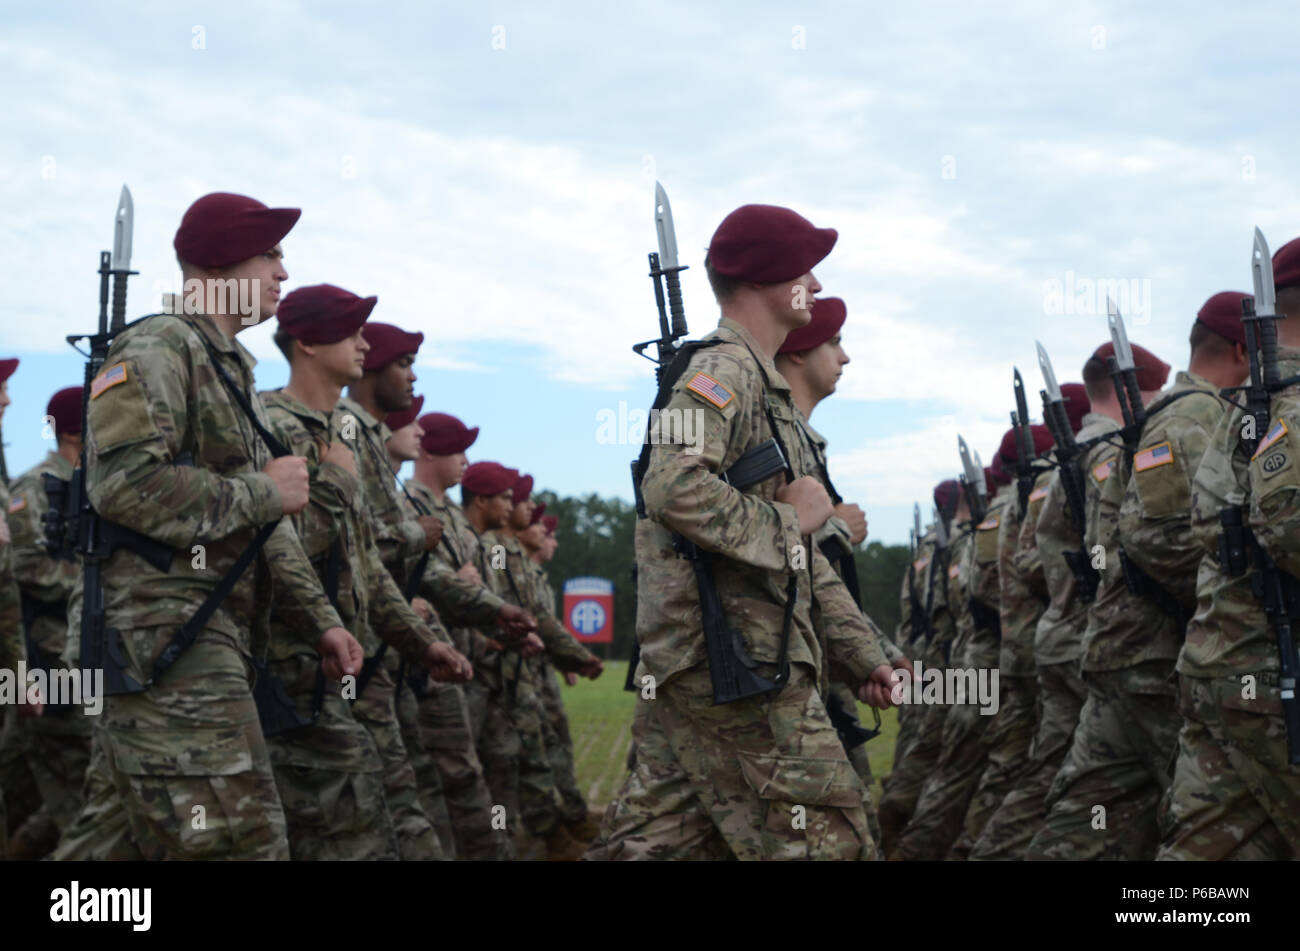 u s army paratroopers assigned to 82nd airborne division artillery